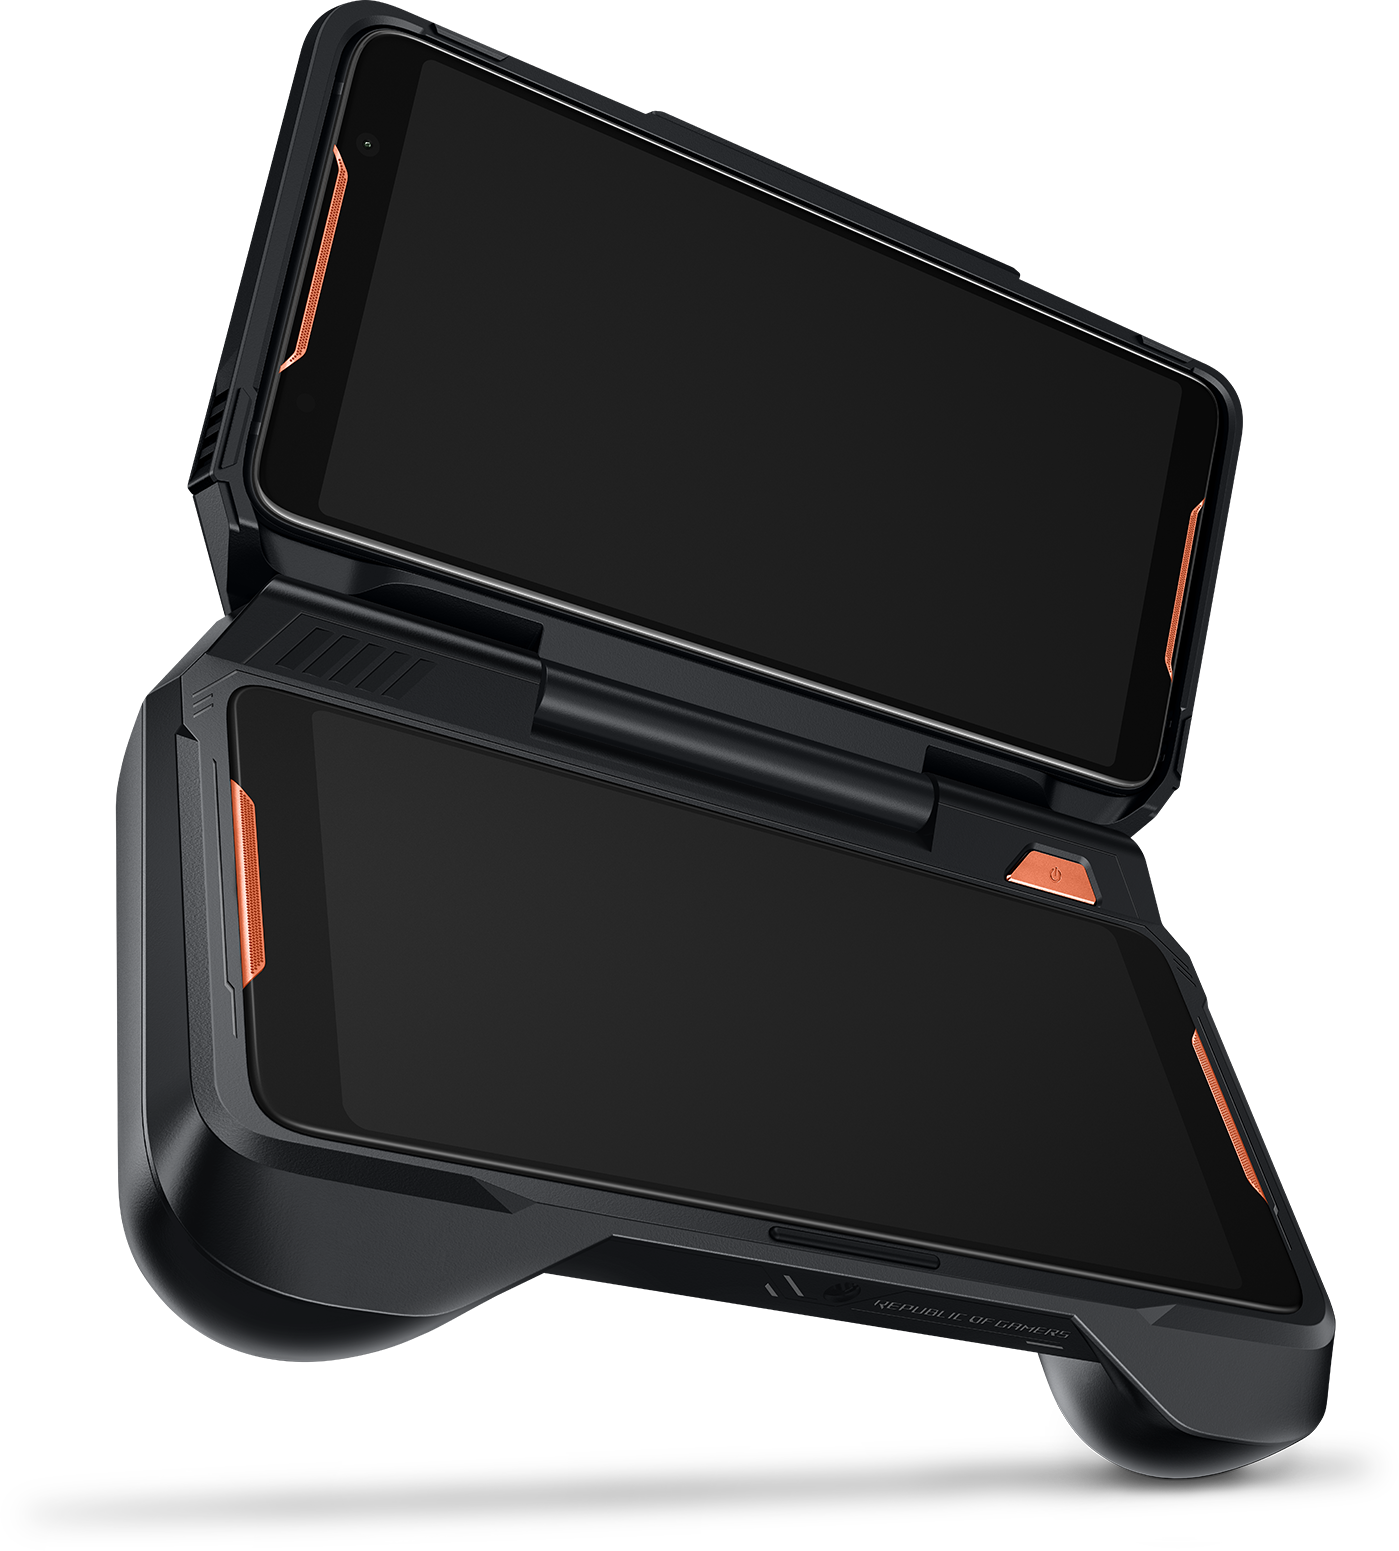 Interior view of the Asus ROG TwinView Dock